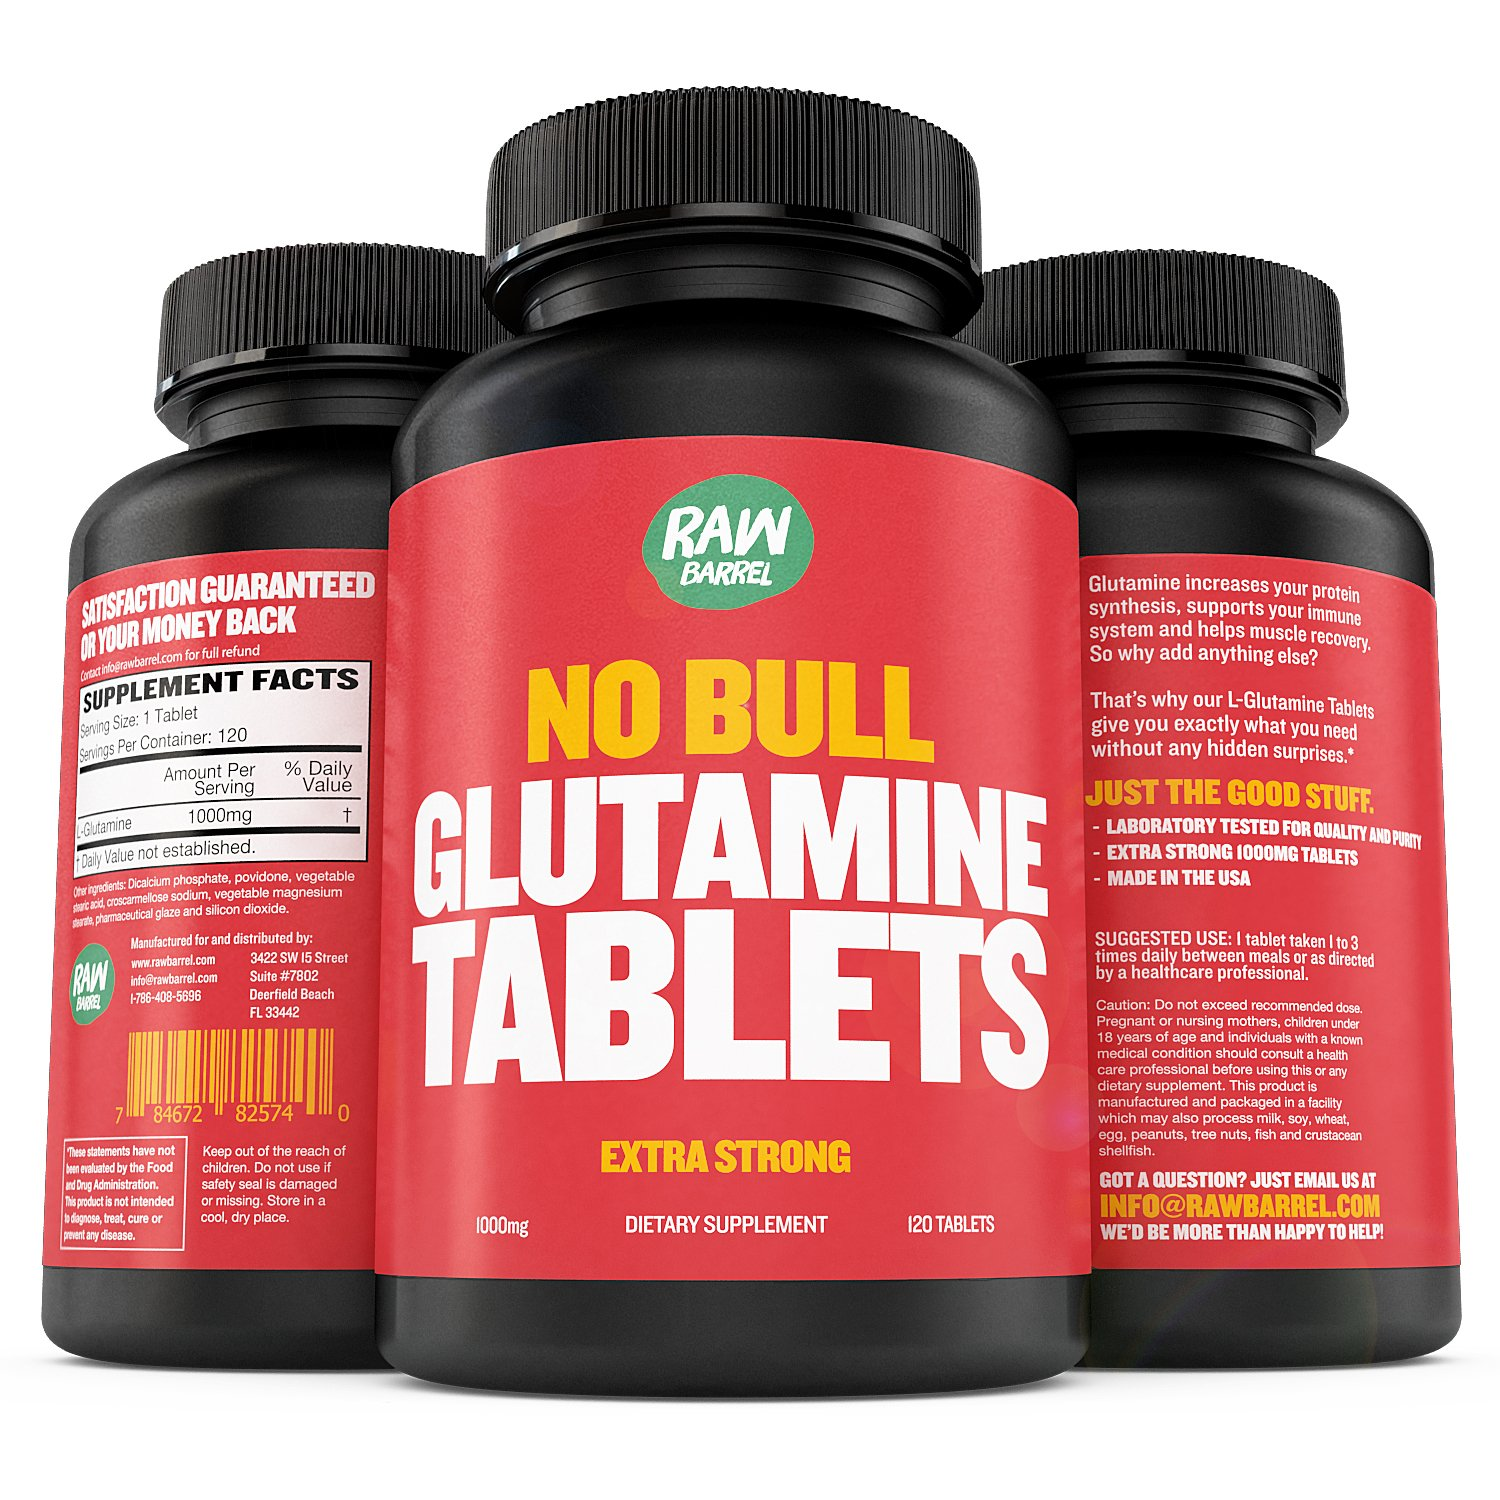 Raw Barrel's - Pure L Glutamine Tablets - 120 Pills at 1000mg - See Results OR Your Money Back - with *Free* Digital Guide by Raw Barrel